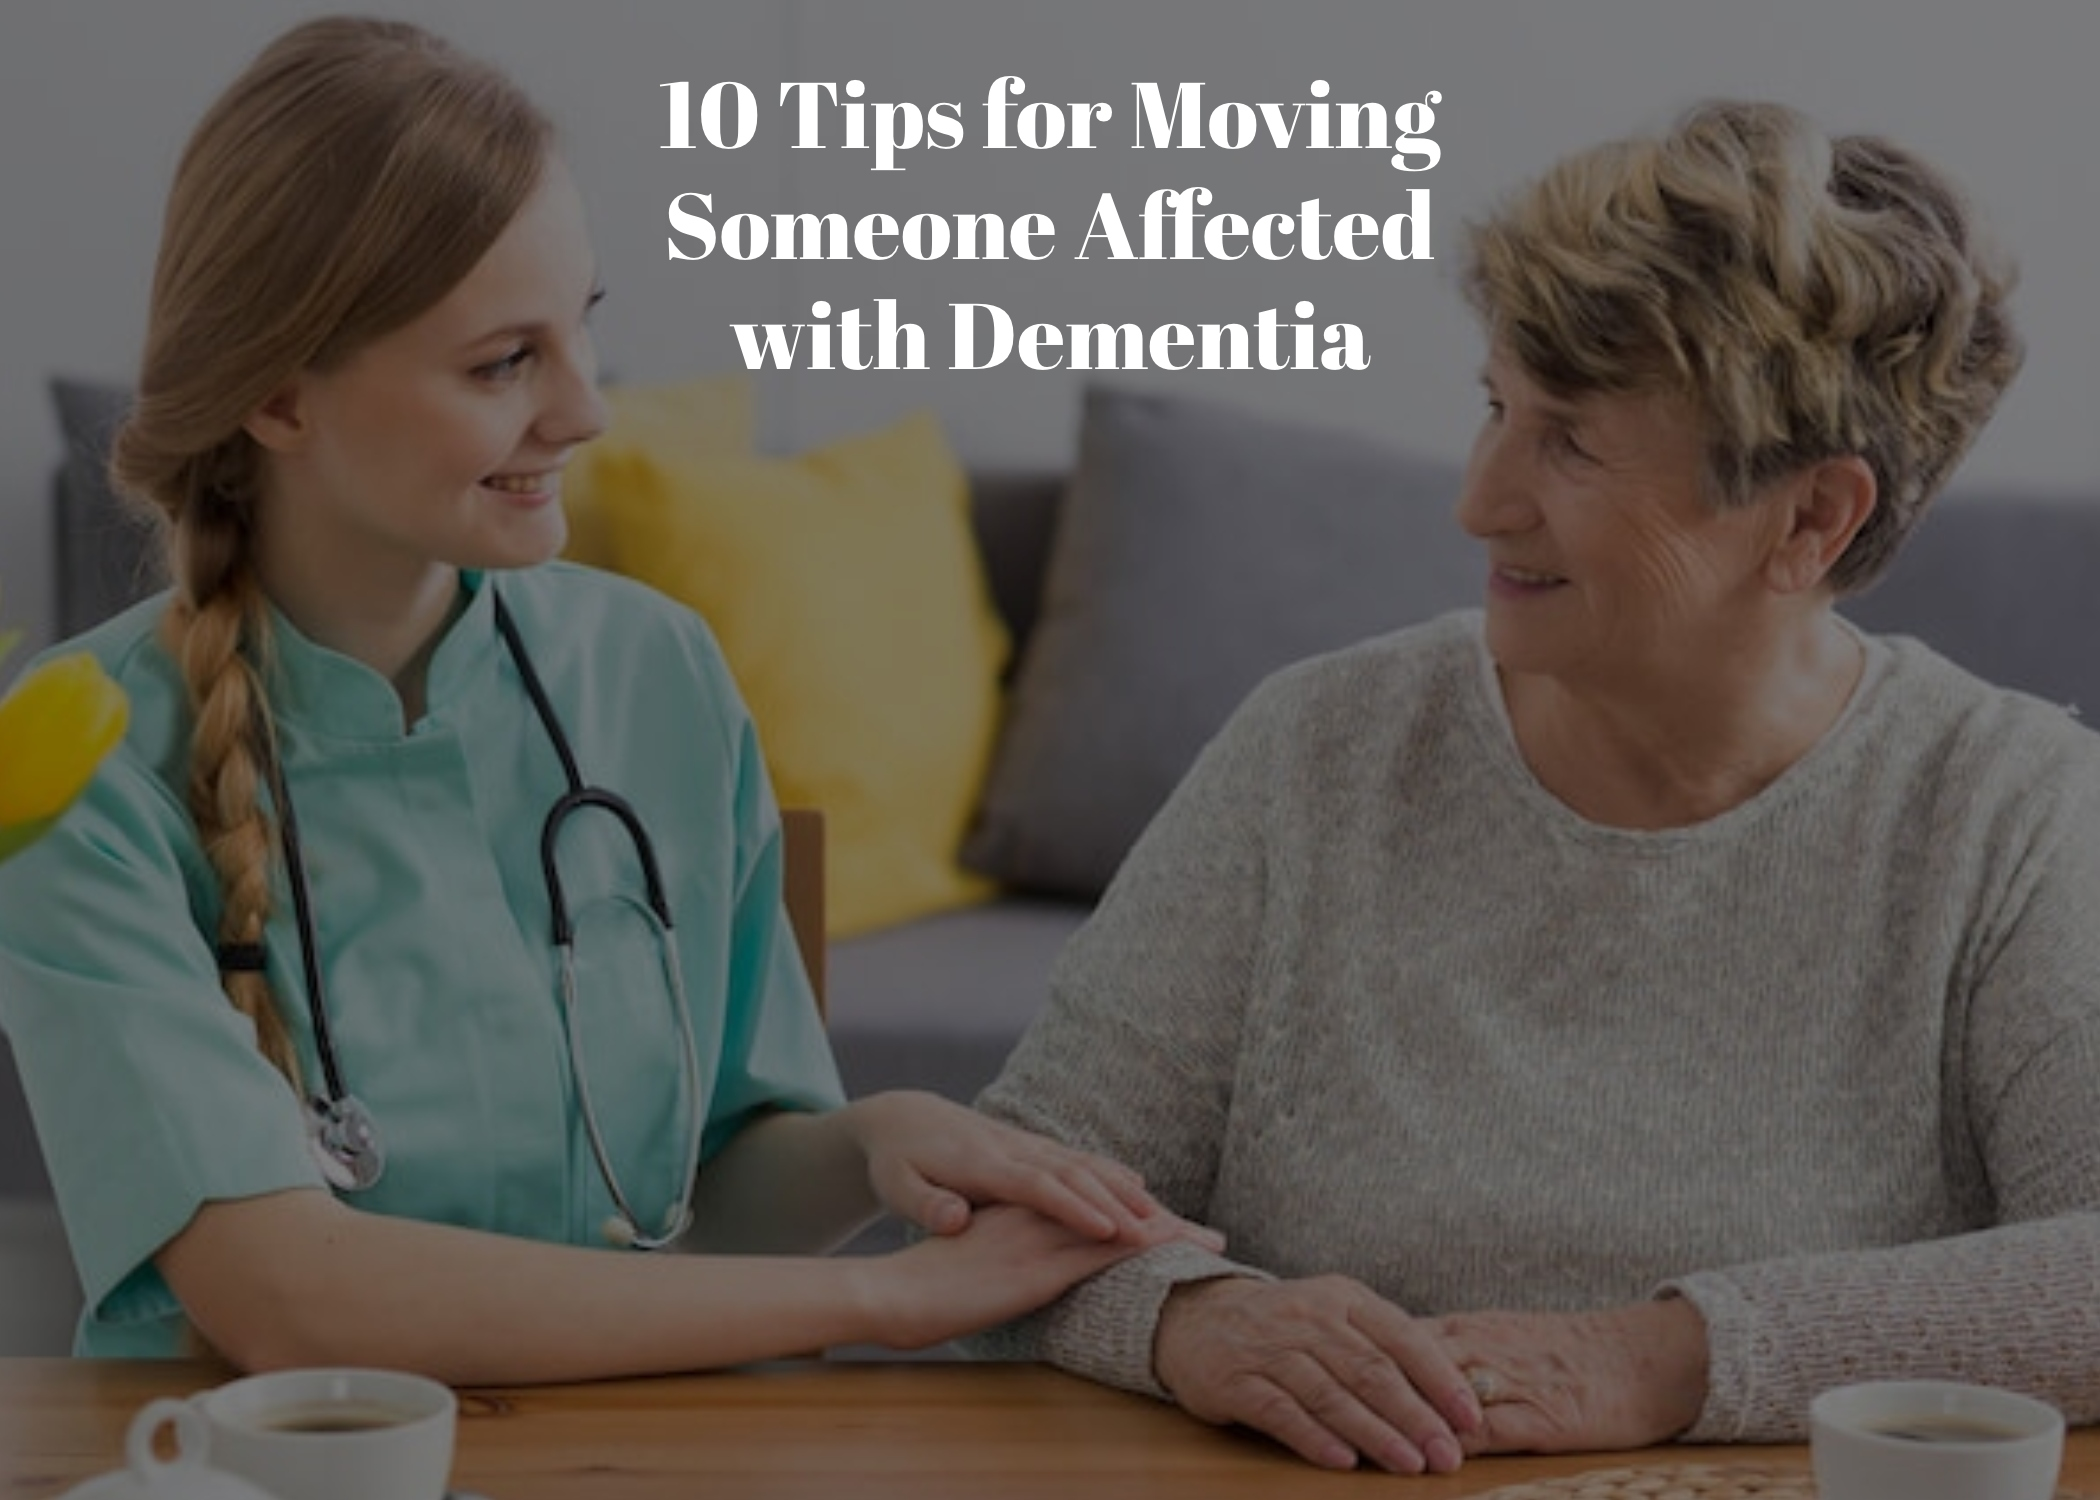 10 Tips for Moving Someone Affected with Dementia